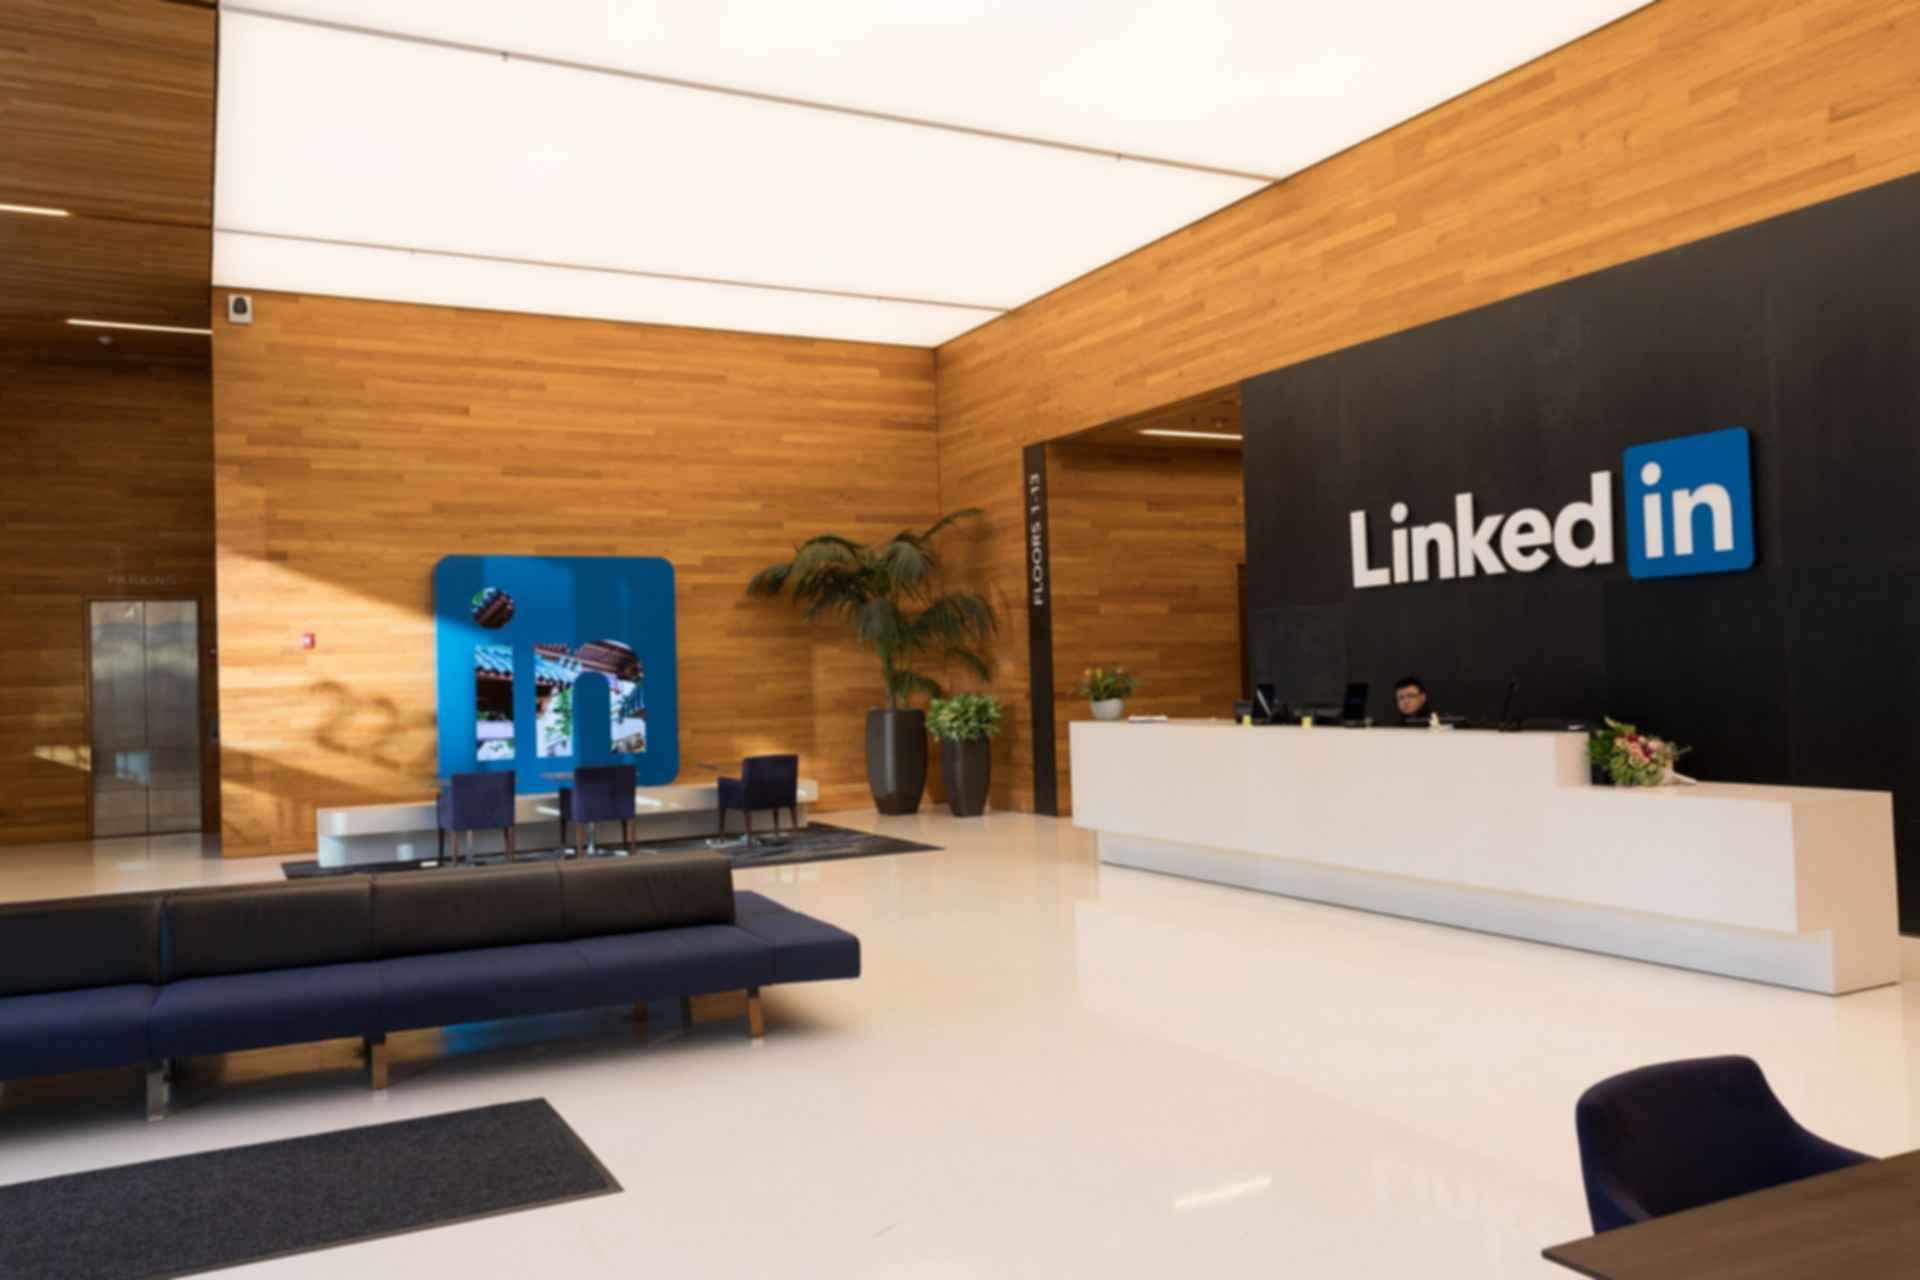 LinkedIn Office - Interior